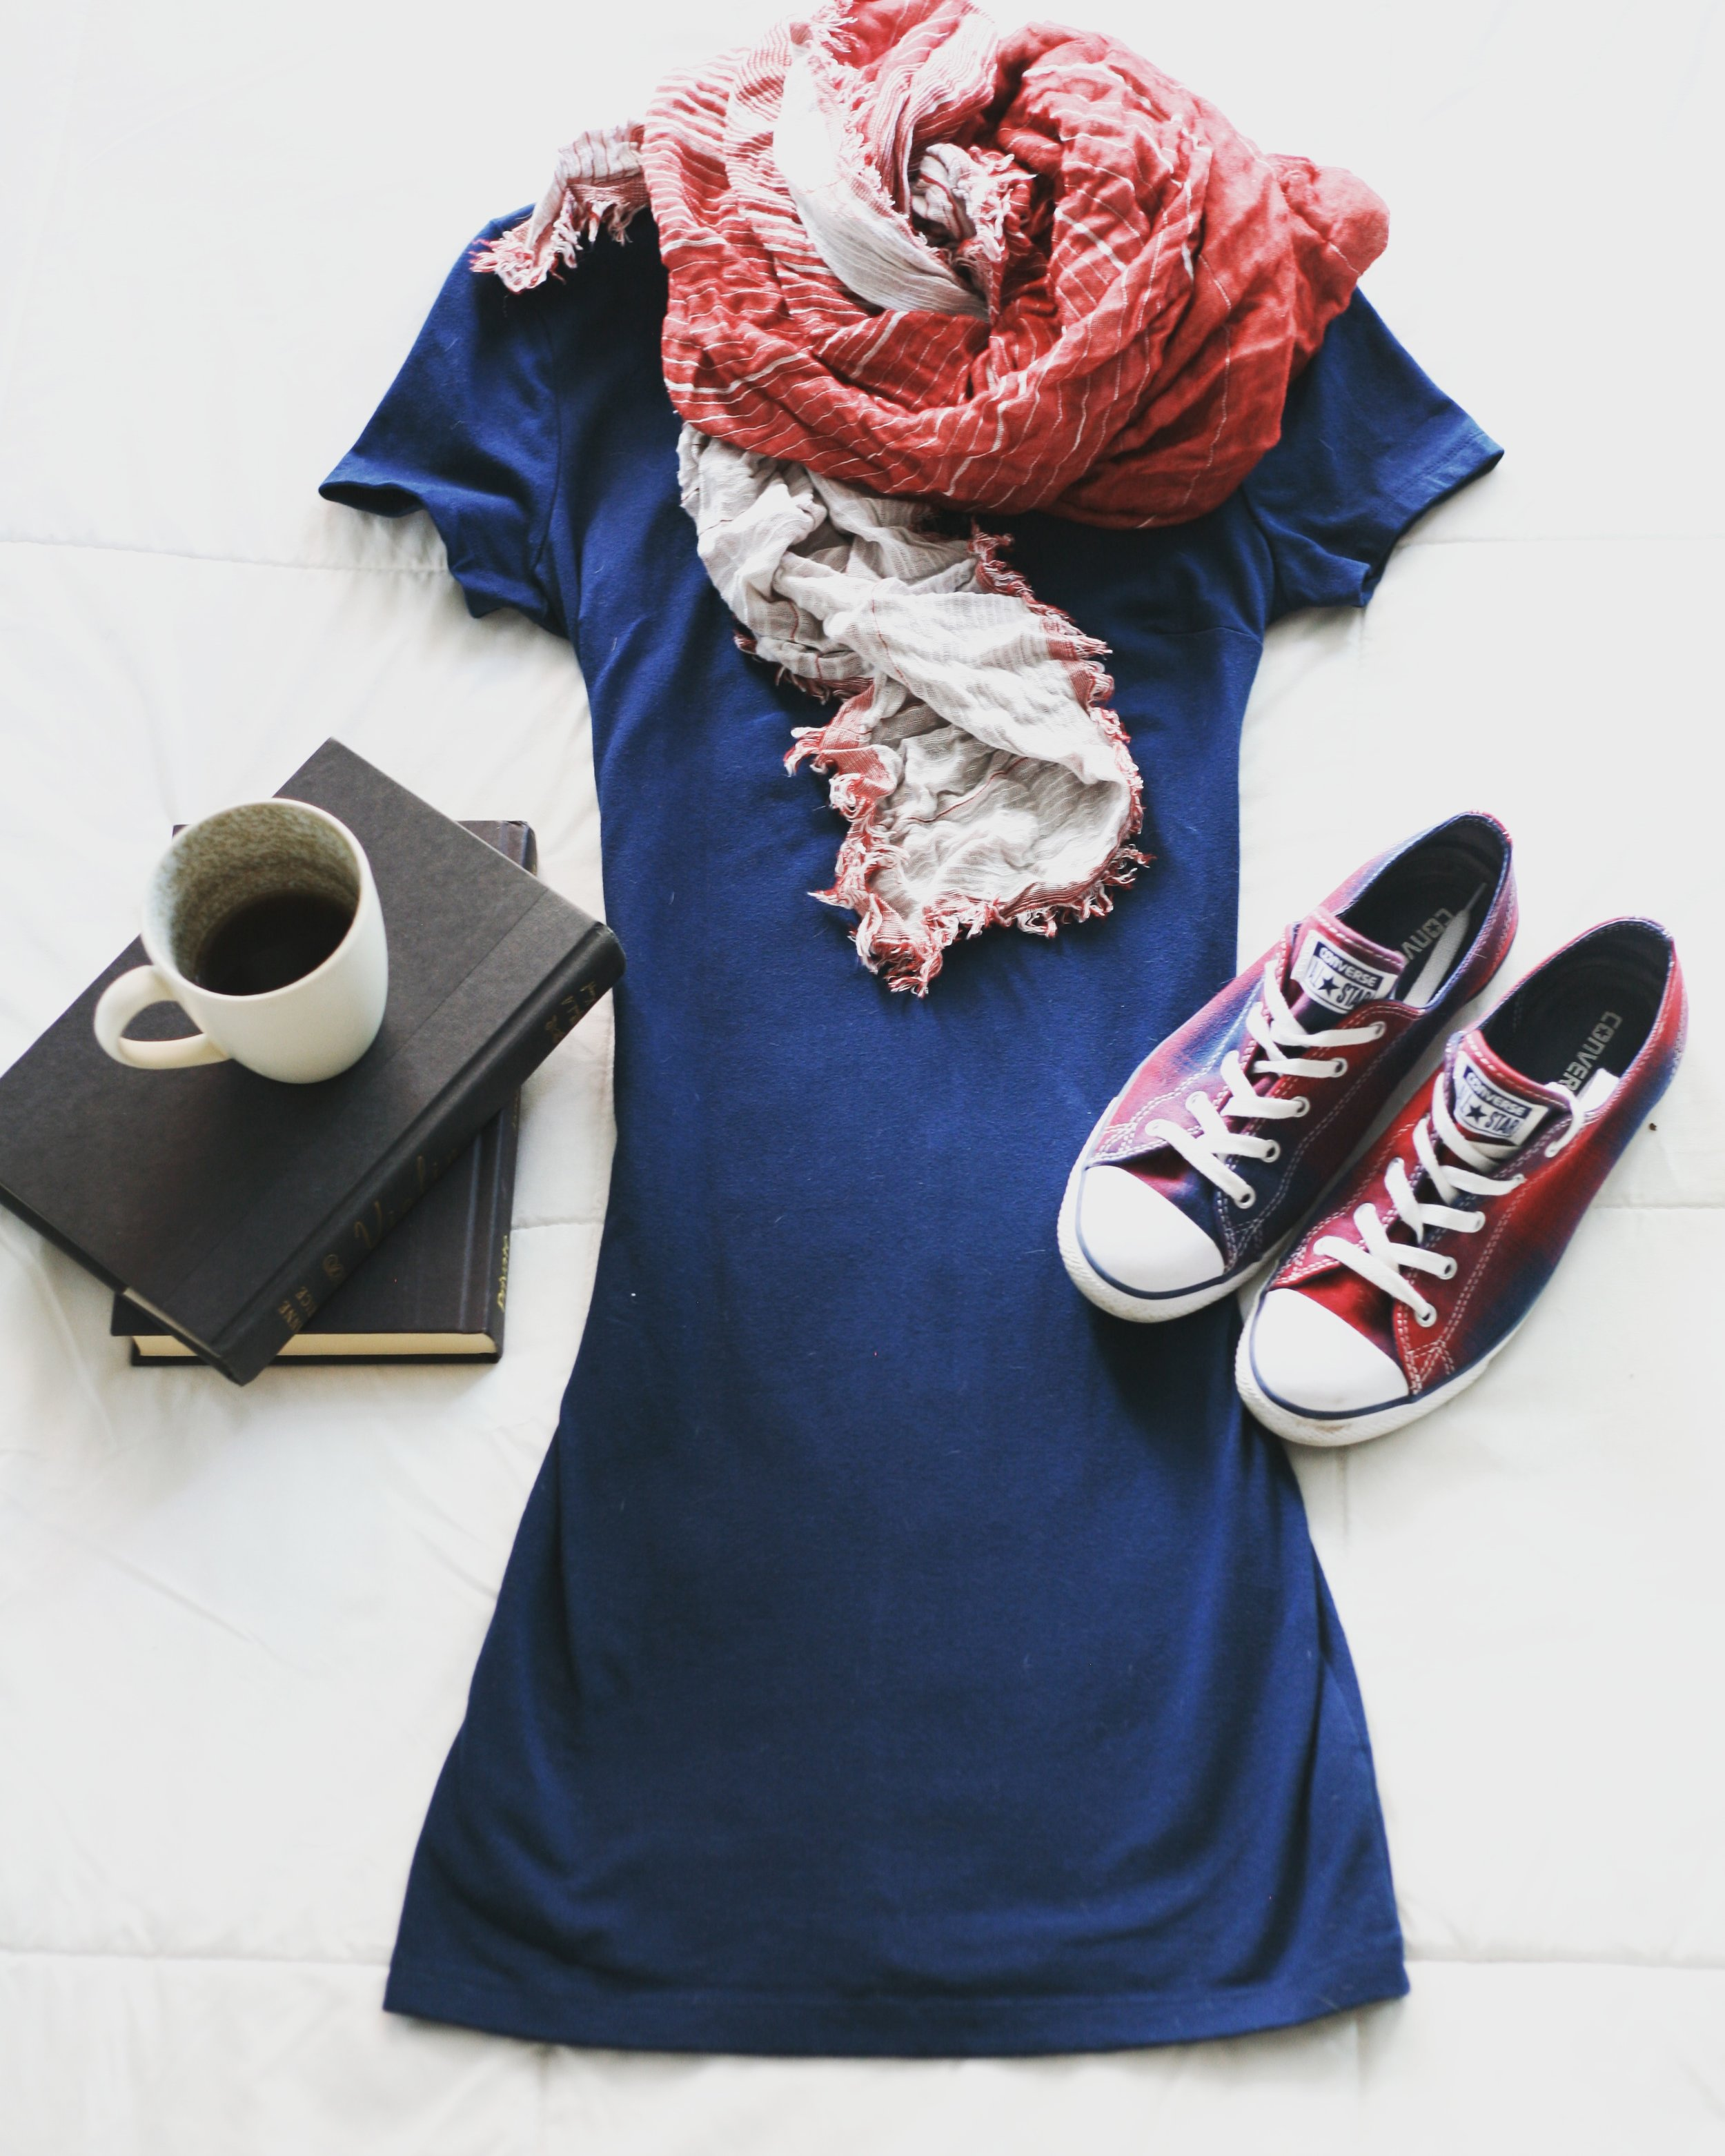 Suits & Sneaks Girls Polished Casual Monday Outfit